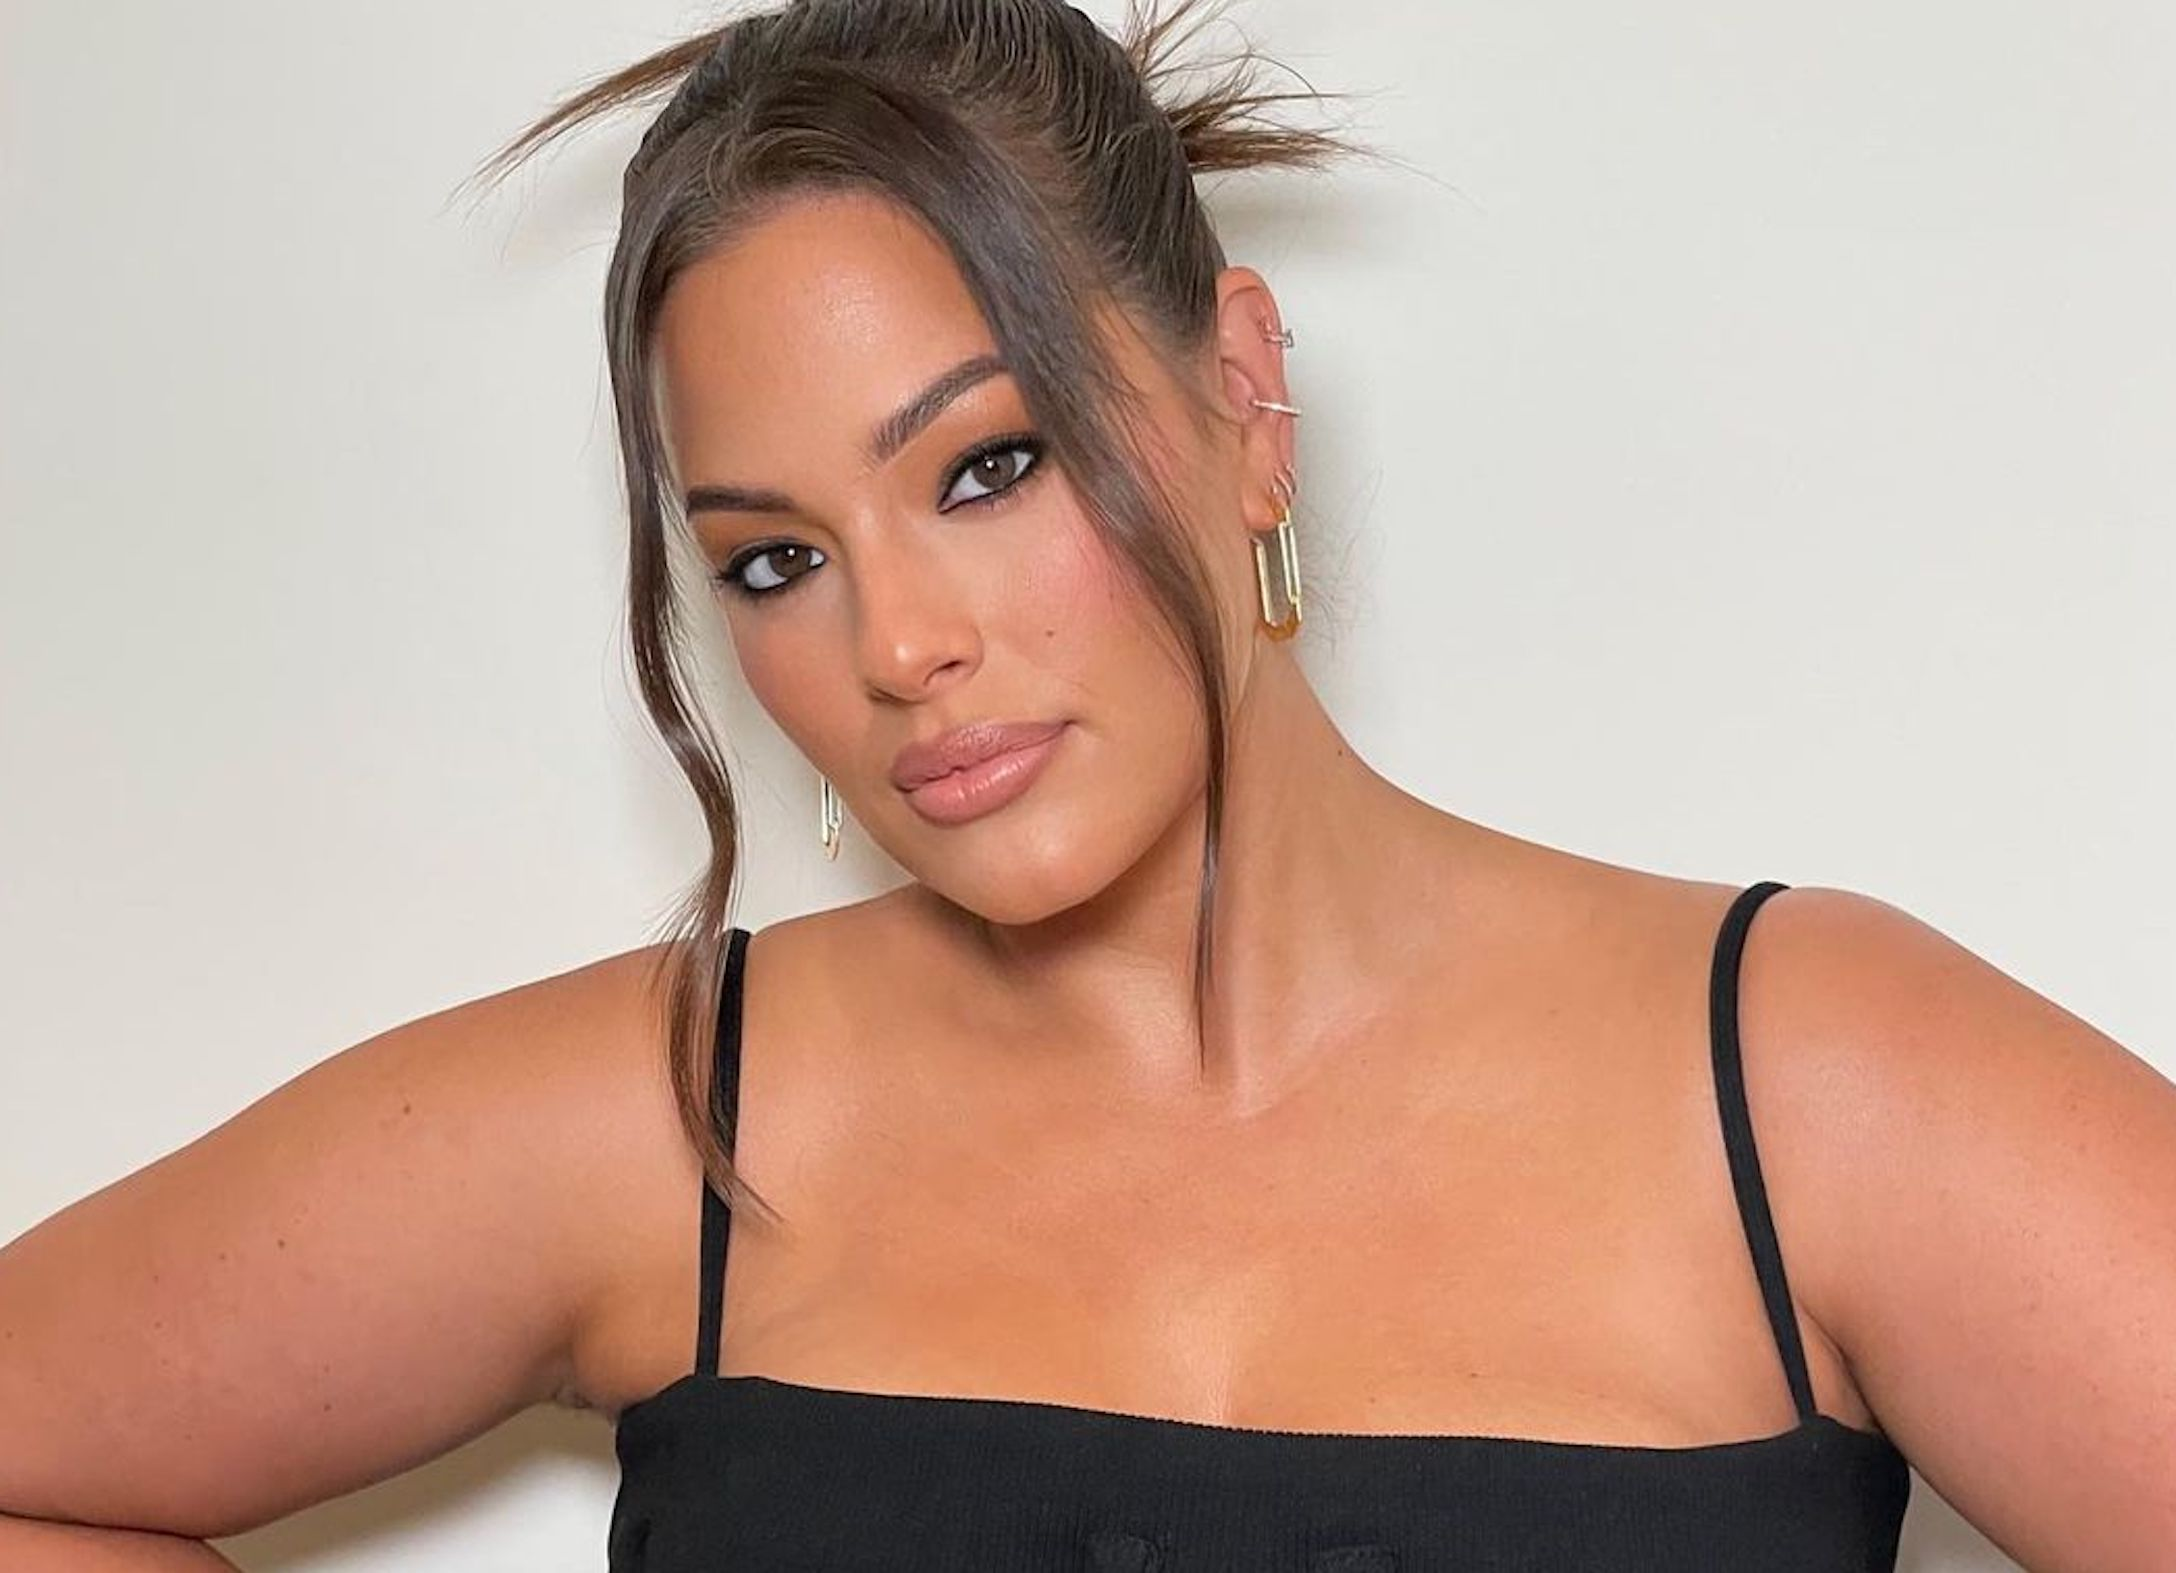 Ashley Graham Shows Off Her Growing Baby Bump in Empowering Body Positivity TikTok